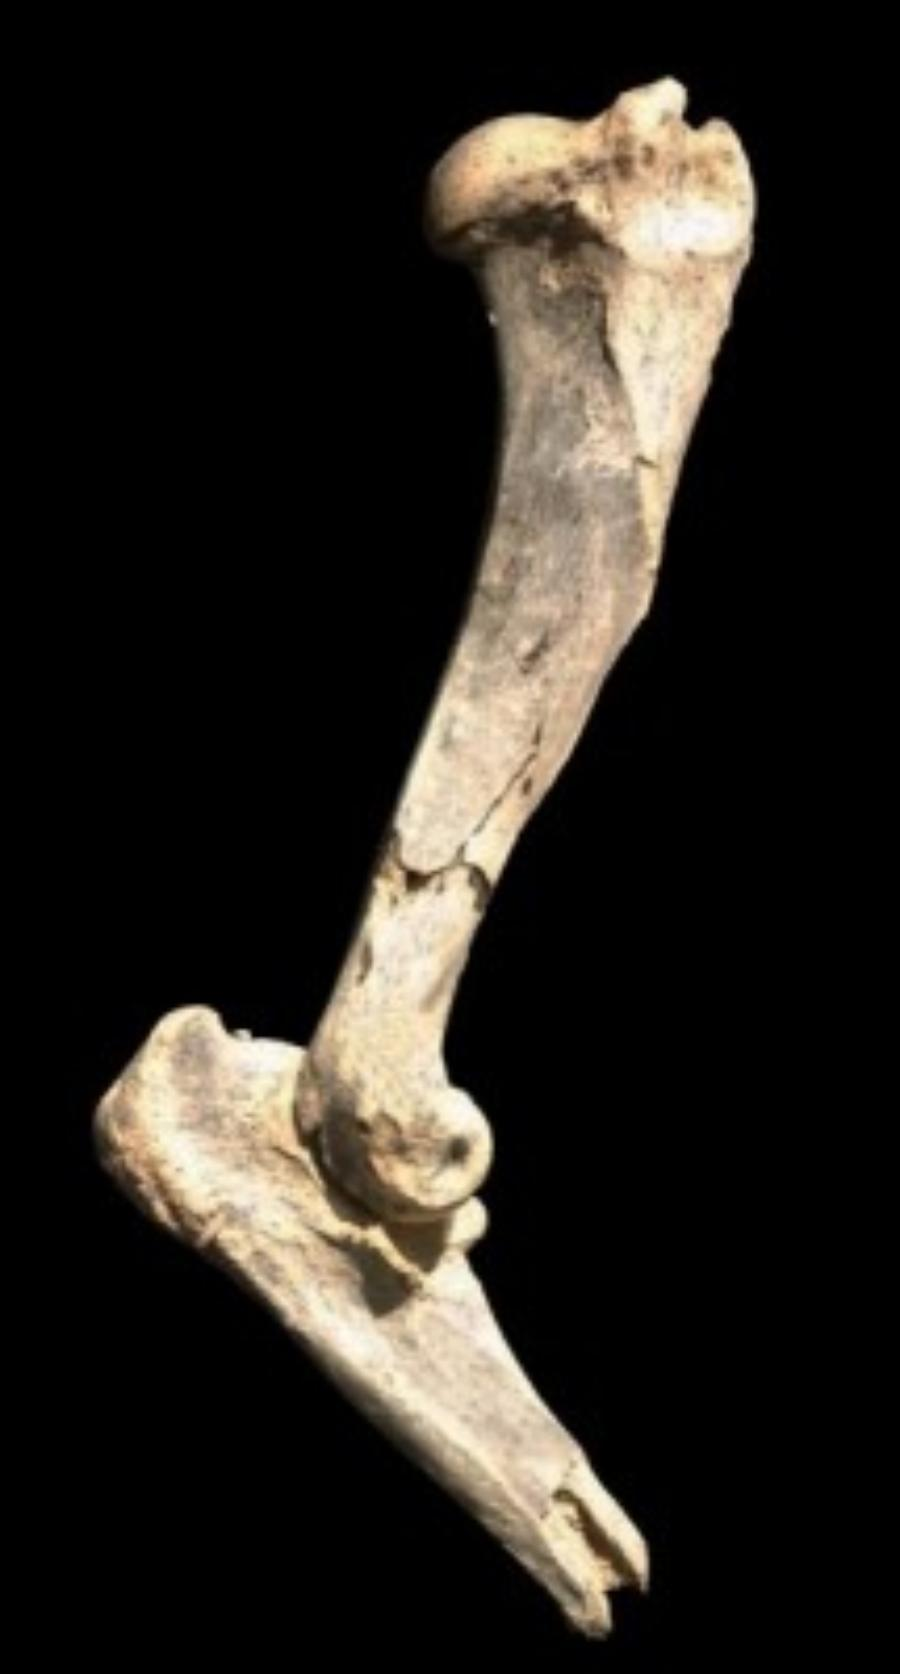 Researchers have identified a new species of saber-toothed cat that weighed 600 pounds, and hunted animals like rhinoceros and giant camels.